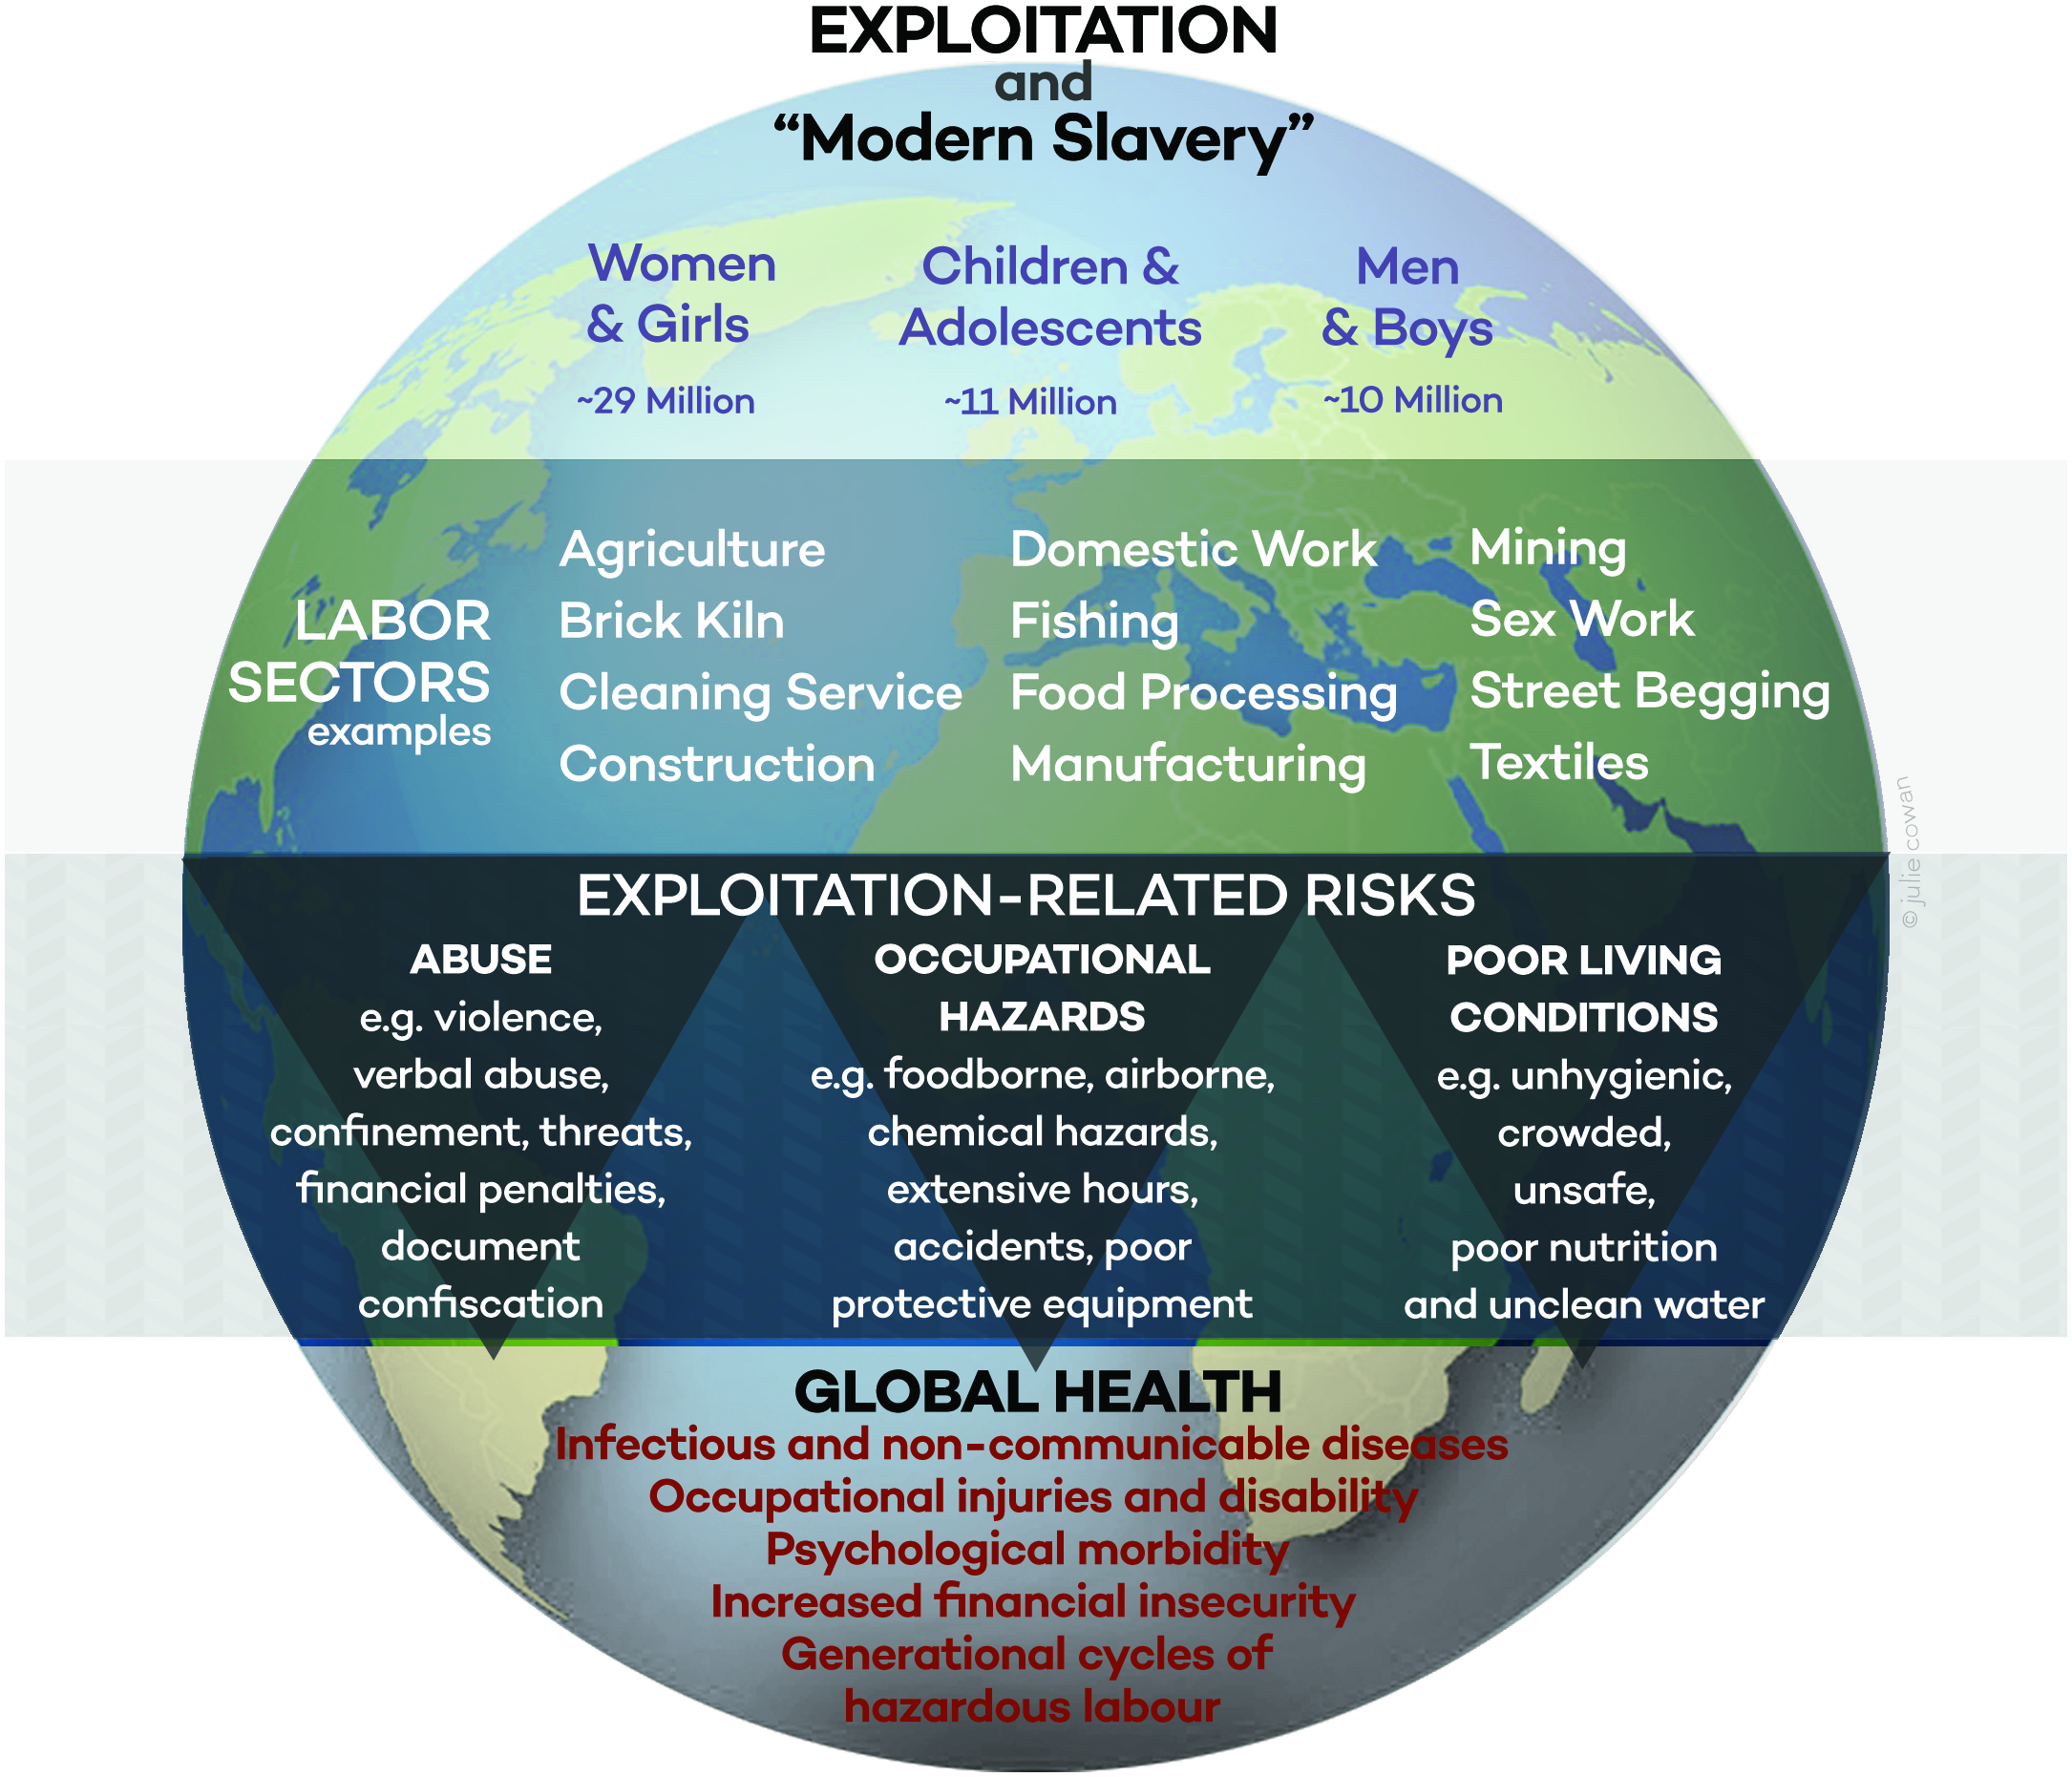 Exploitation, risks, and global health.